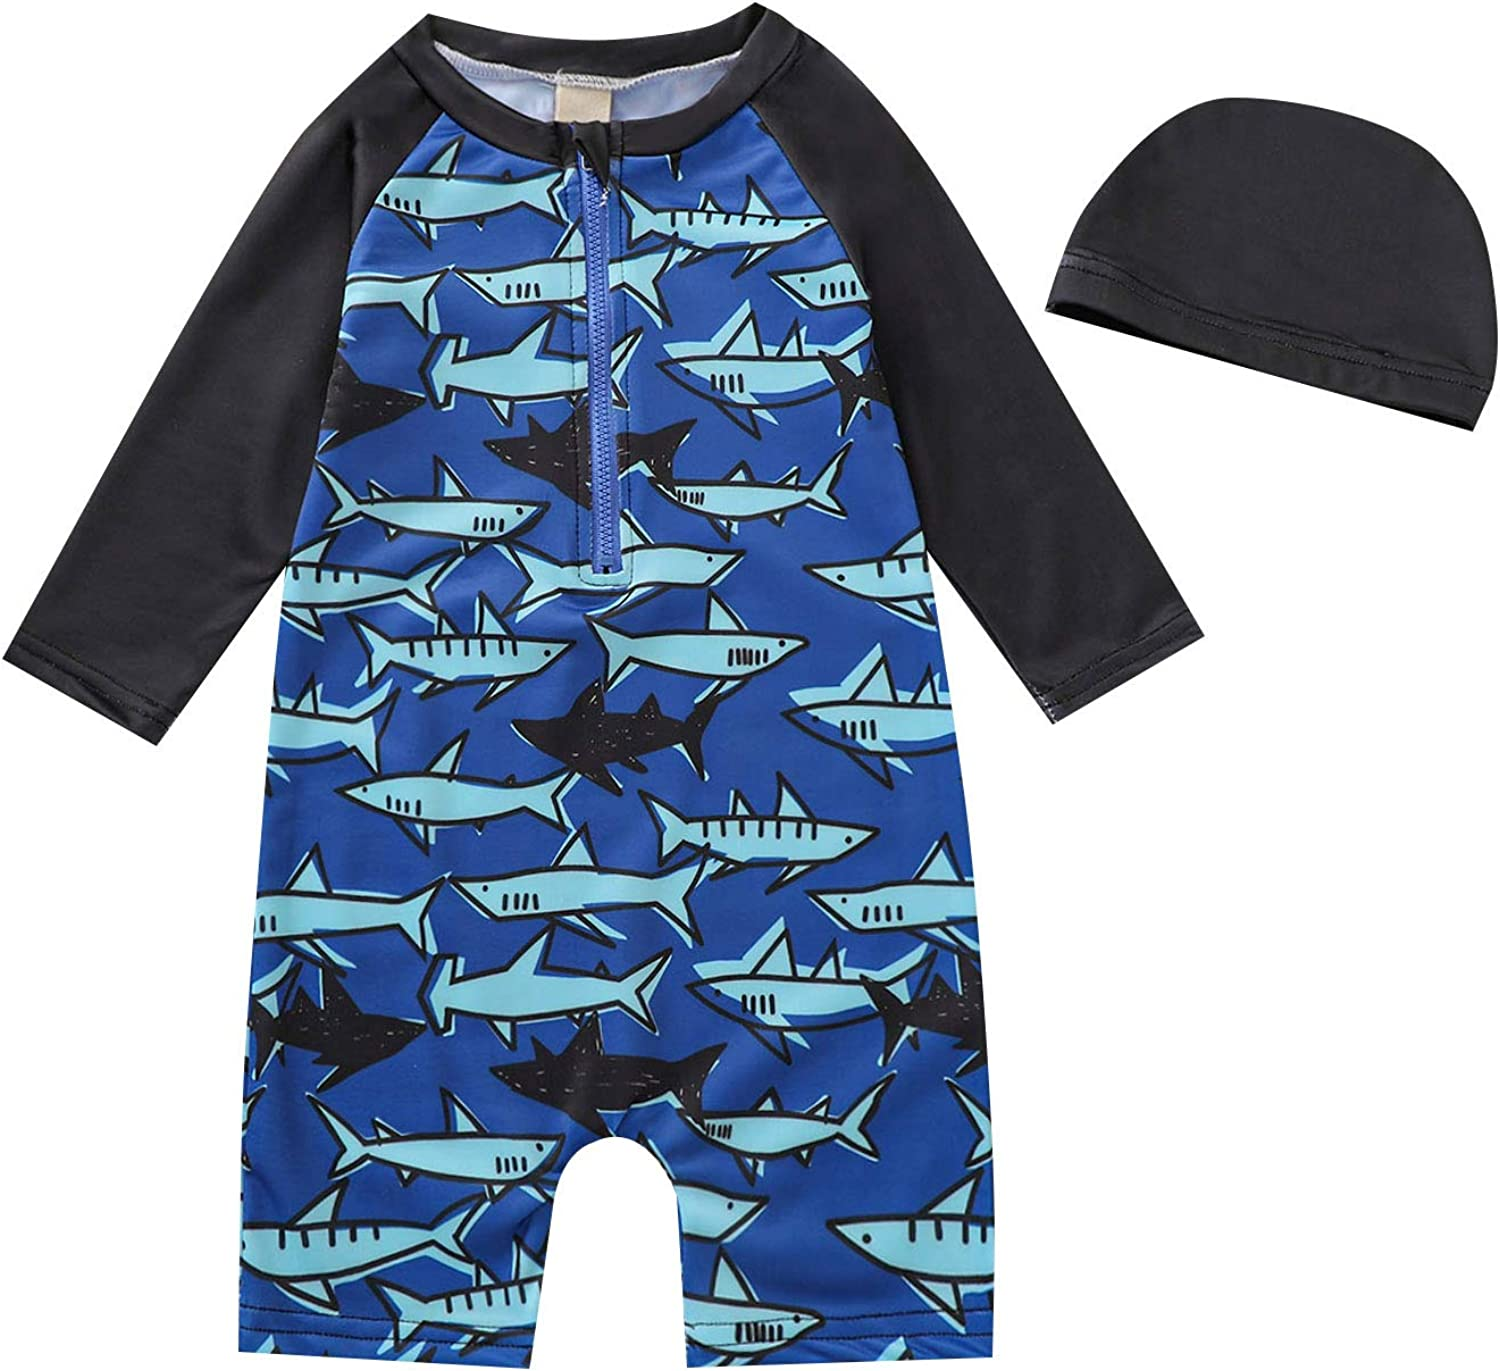 Toddler Baby Boy Bathing Suit Little Boys Long Sleeve One Piece Swimsuit Set Breathable Swimwear with Bathing Cap